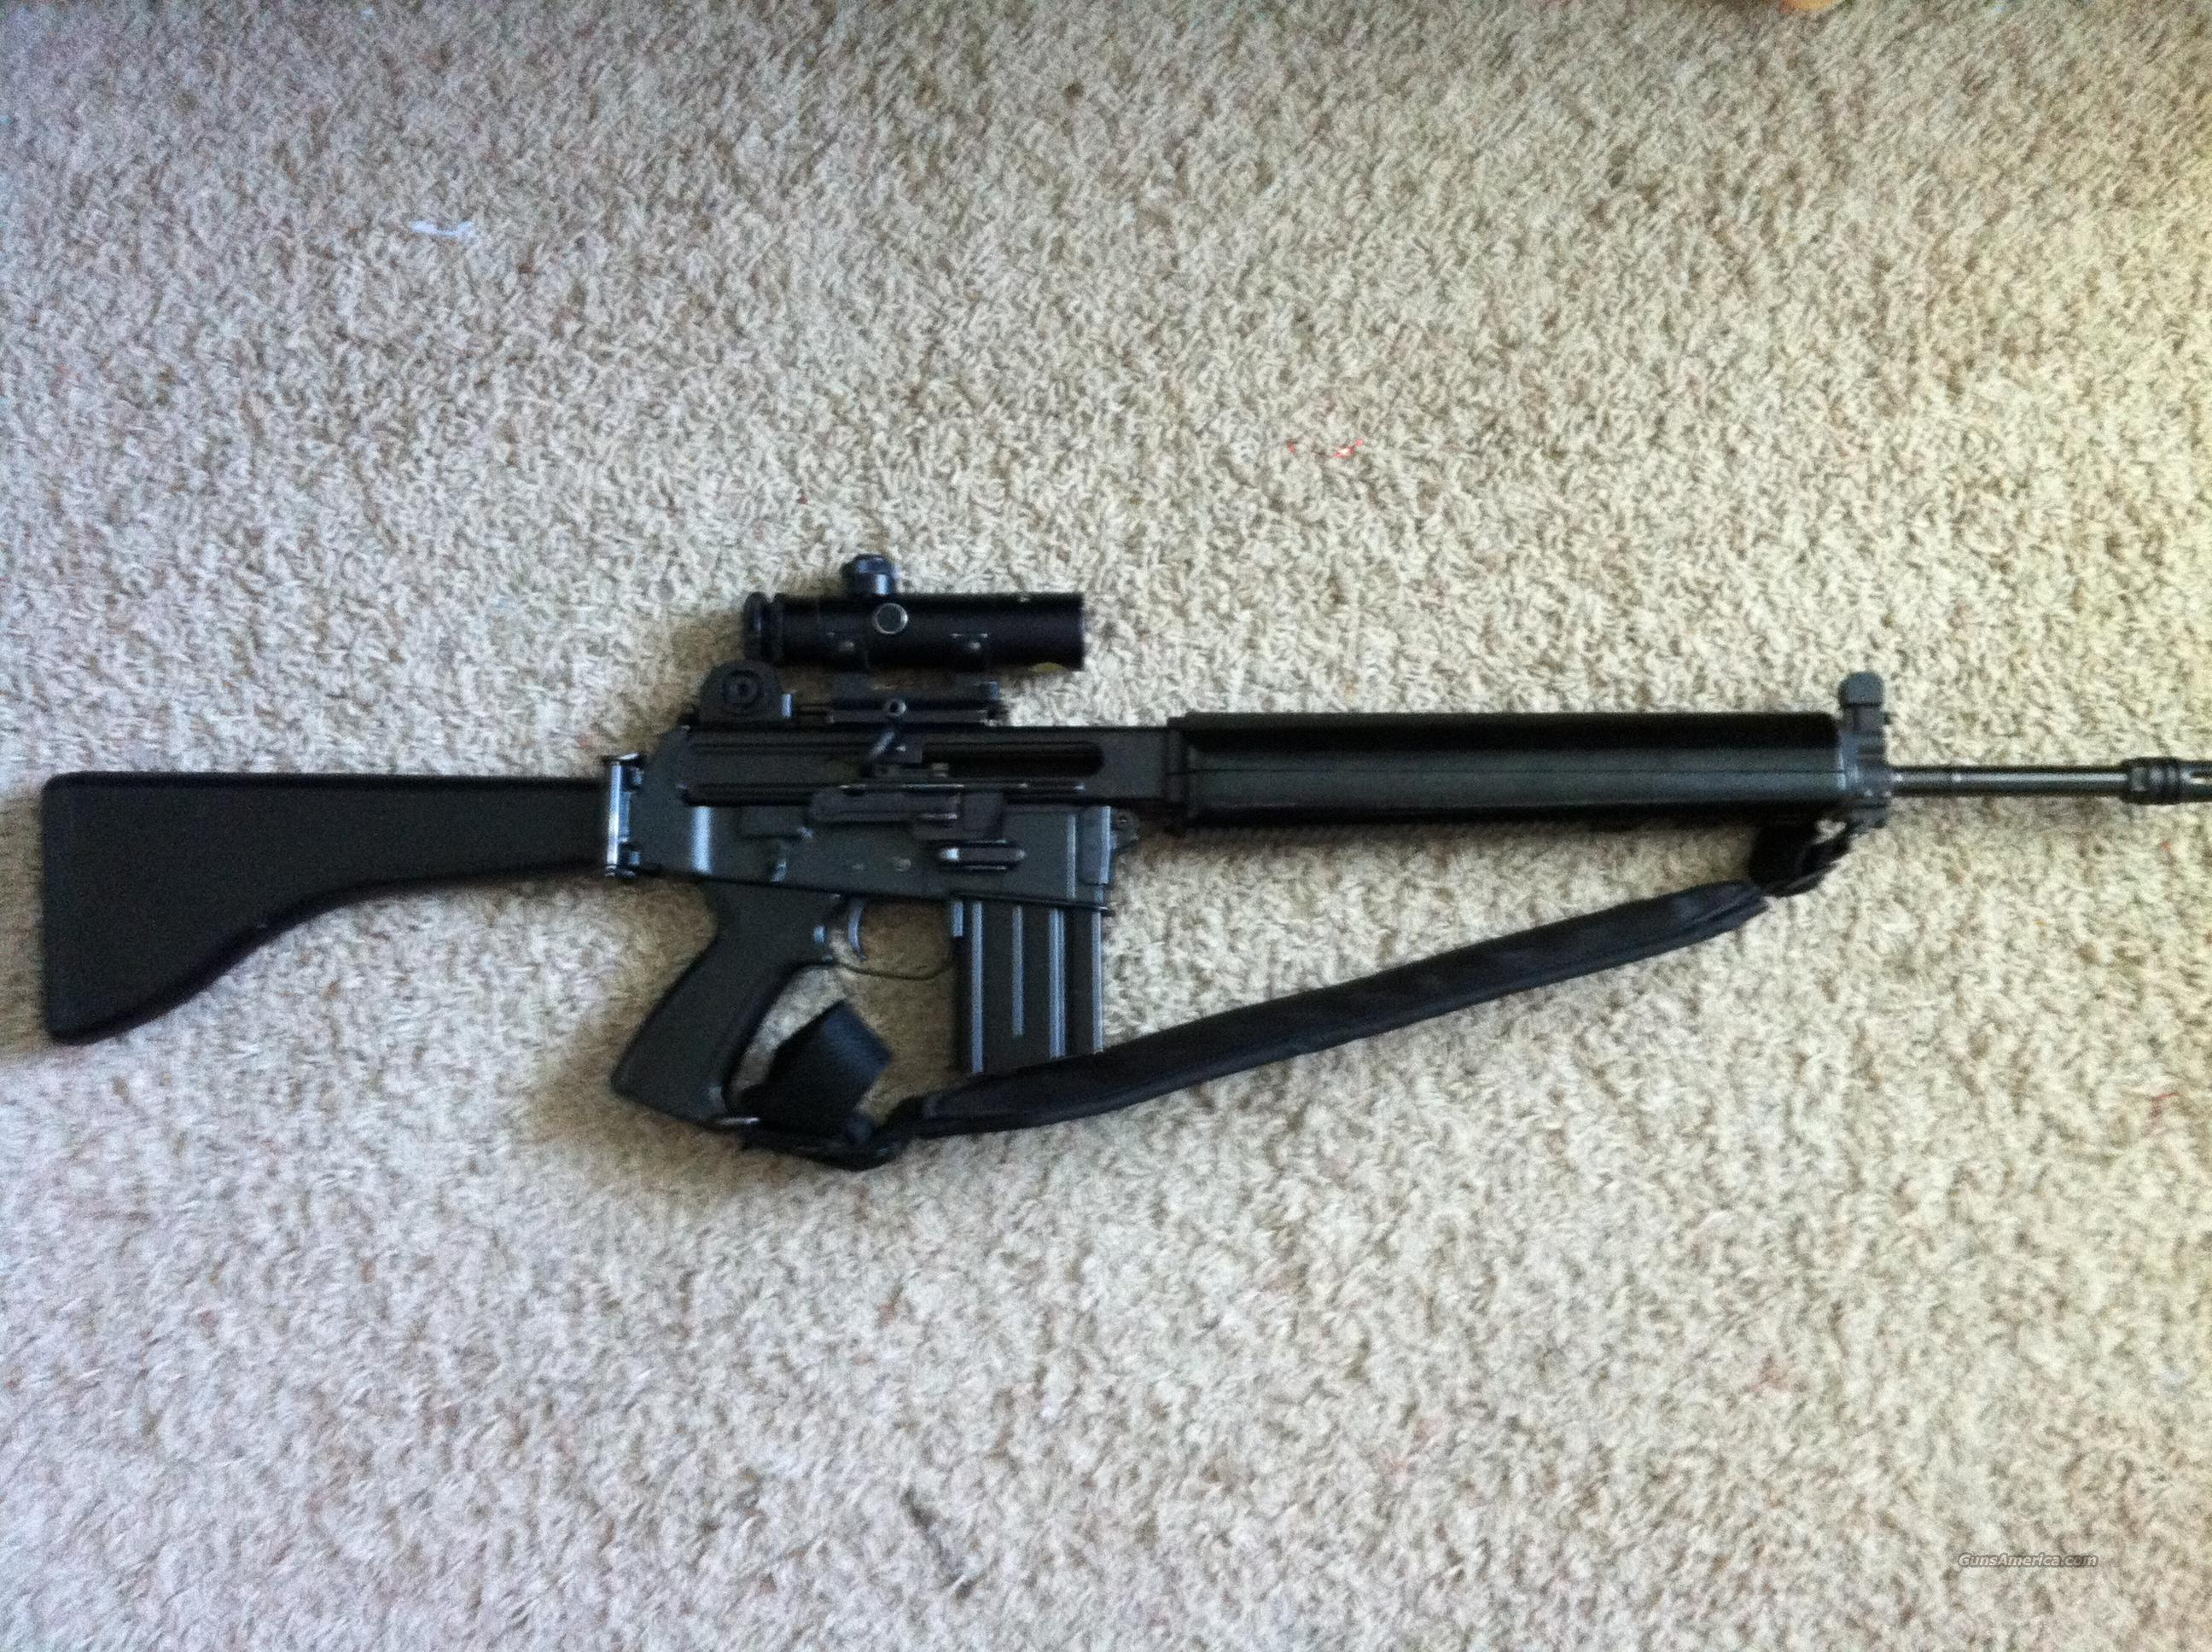 Armalite AR-180 Costa Mesa MFG w/ Scope  Guns > Rifles > Armalite Rifles > Complete Rifles